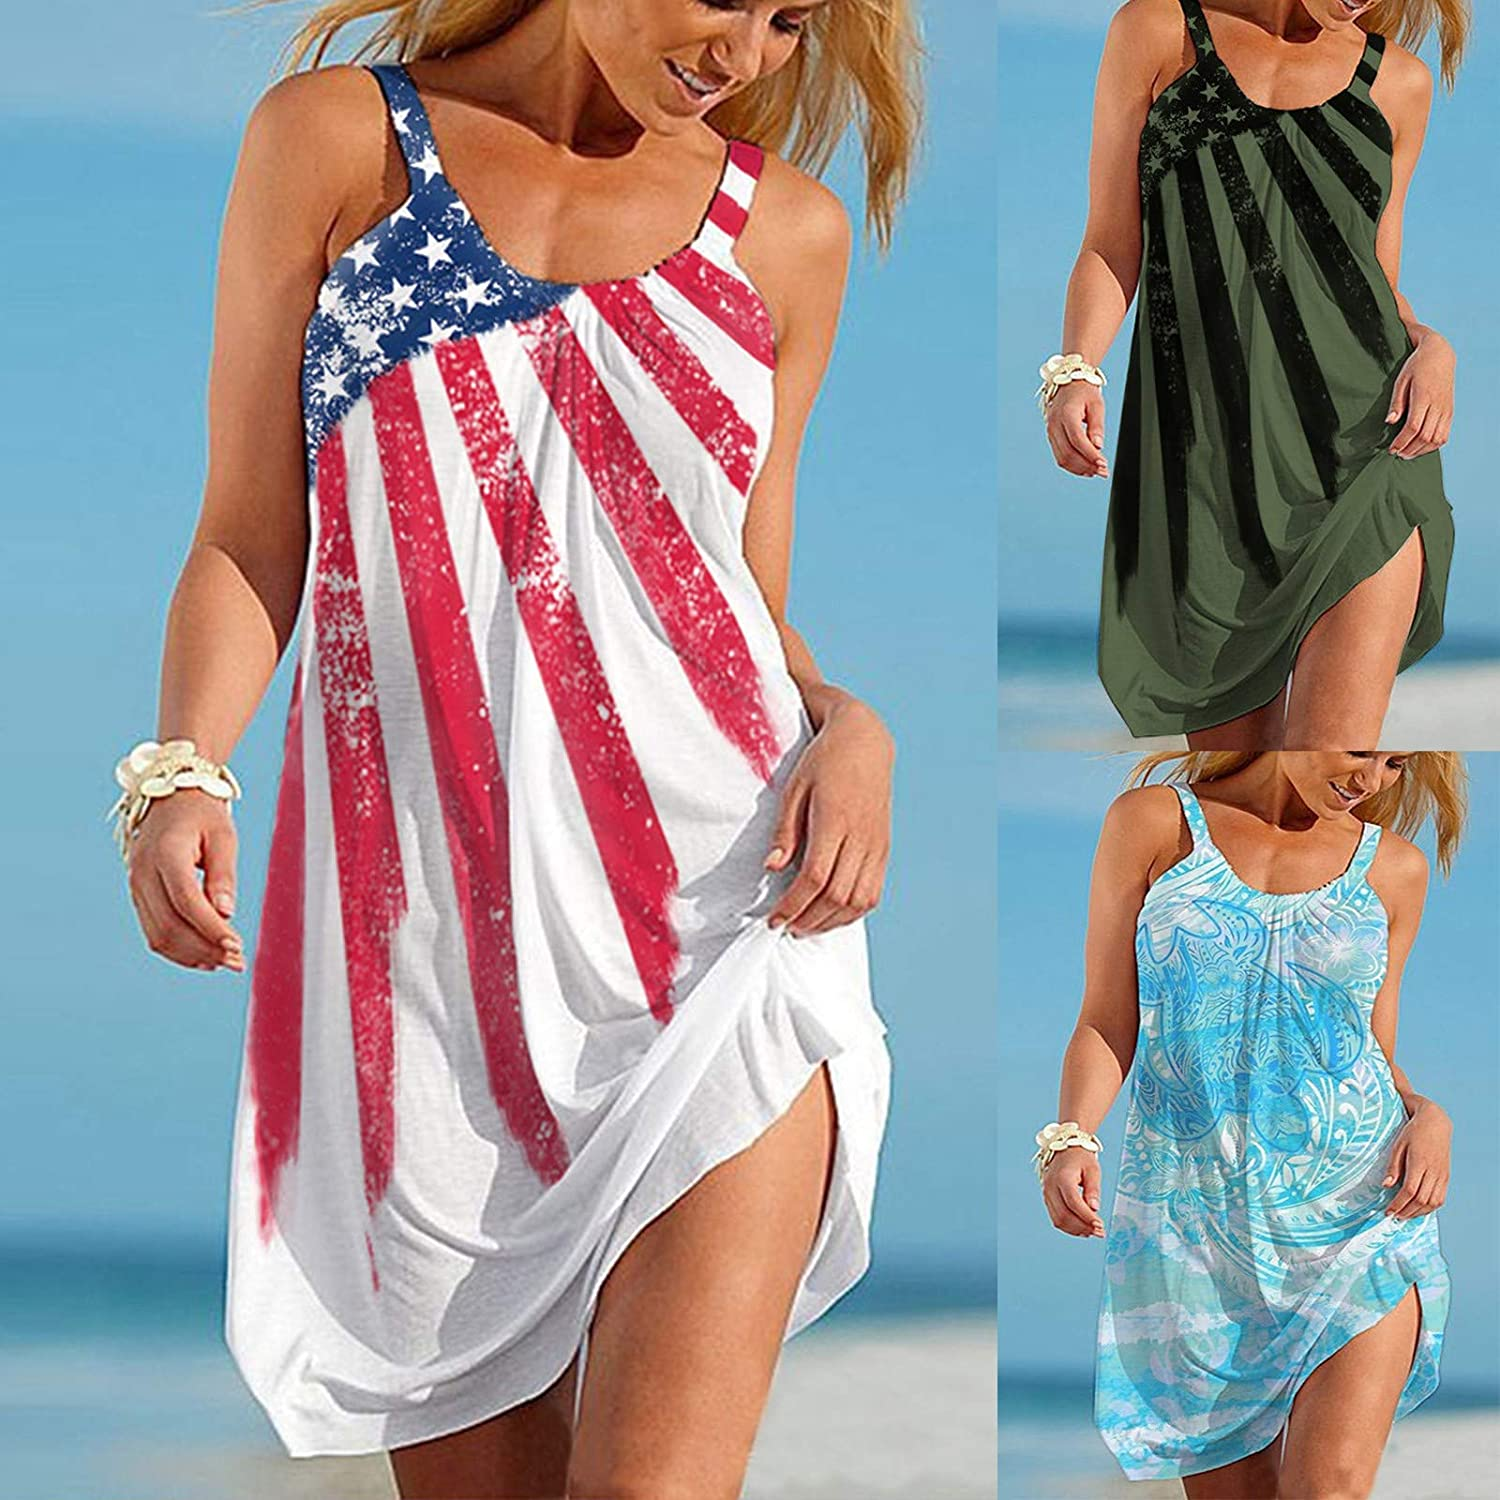 Summer Dresses for Women Beach,Women's Spaghetti Strap Pure Color Sleeveless Casual Swing Midi Sundress for Party